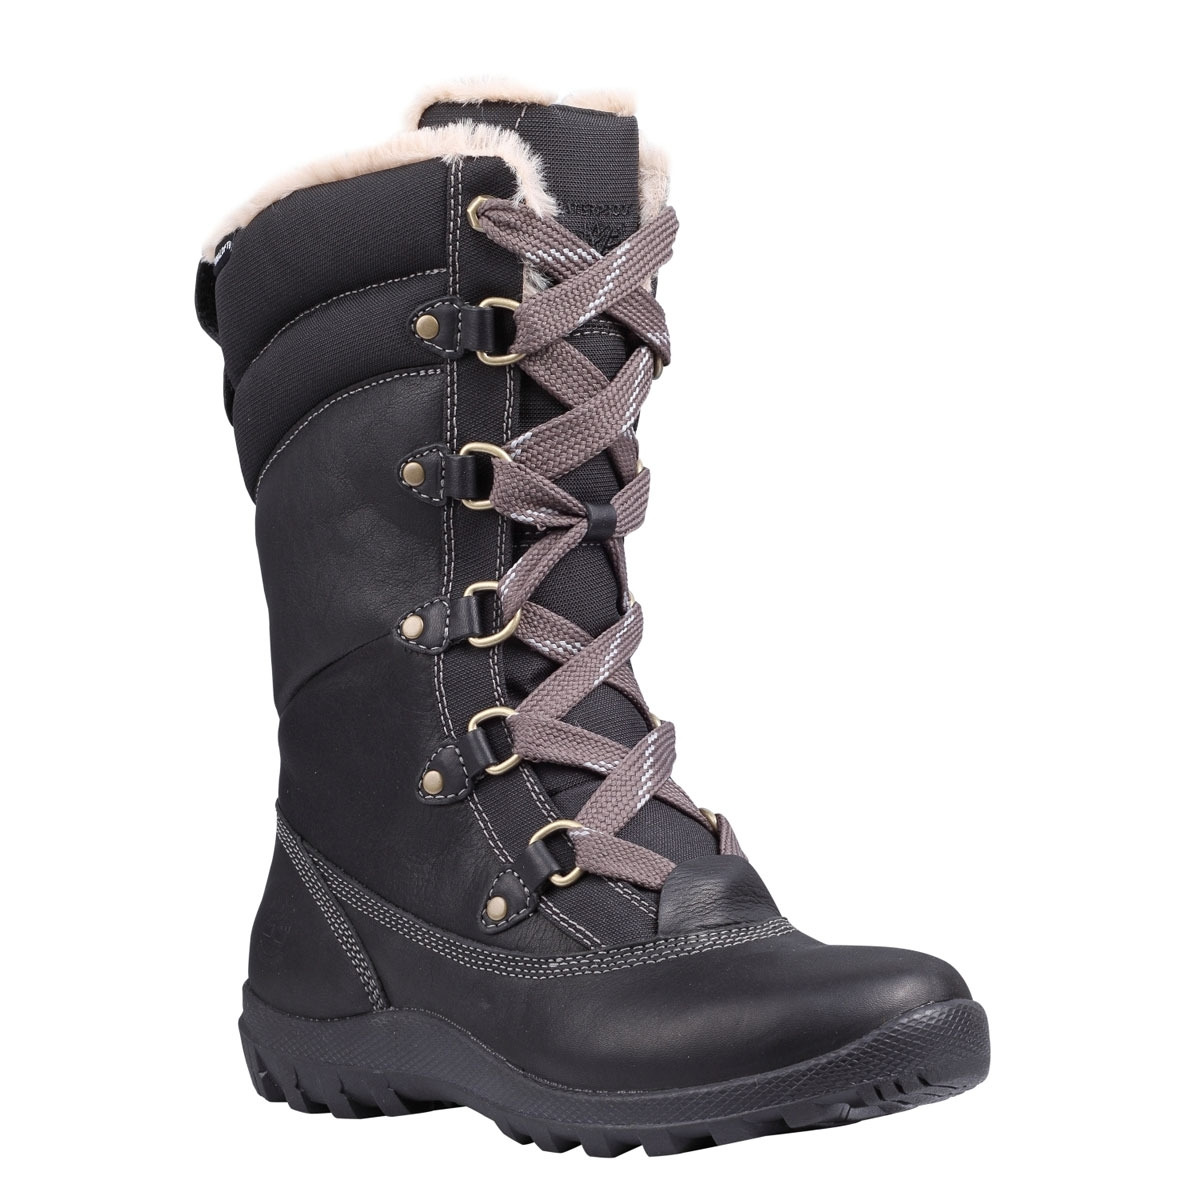 Image of Timberland Earthkeepers Mount Hope Mid Waterproof Boots (Women s)  - Black Forty Leather f3f164a8d9